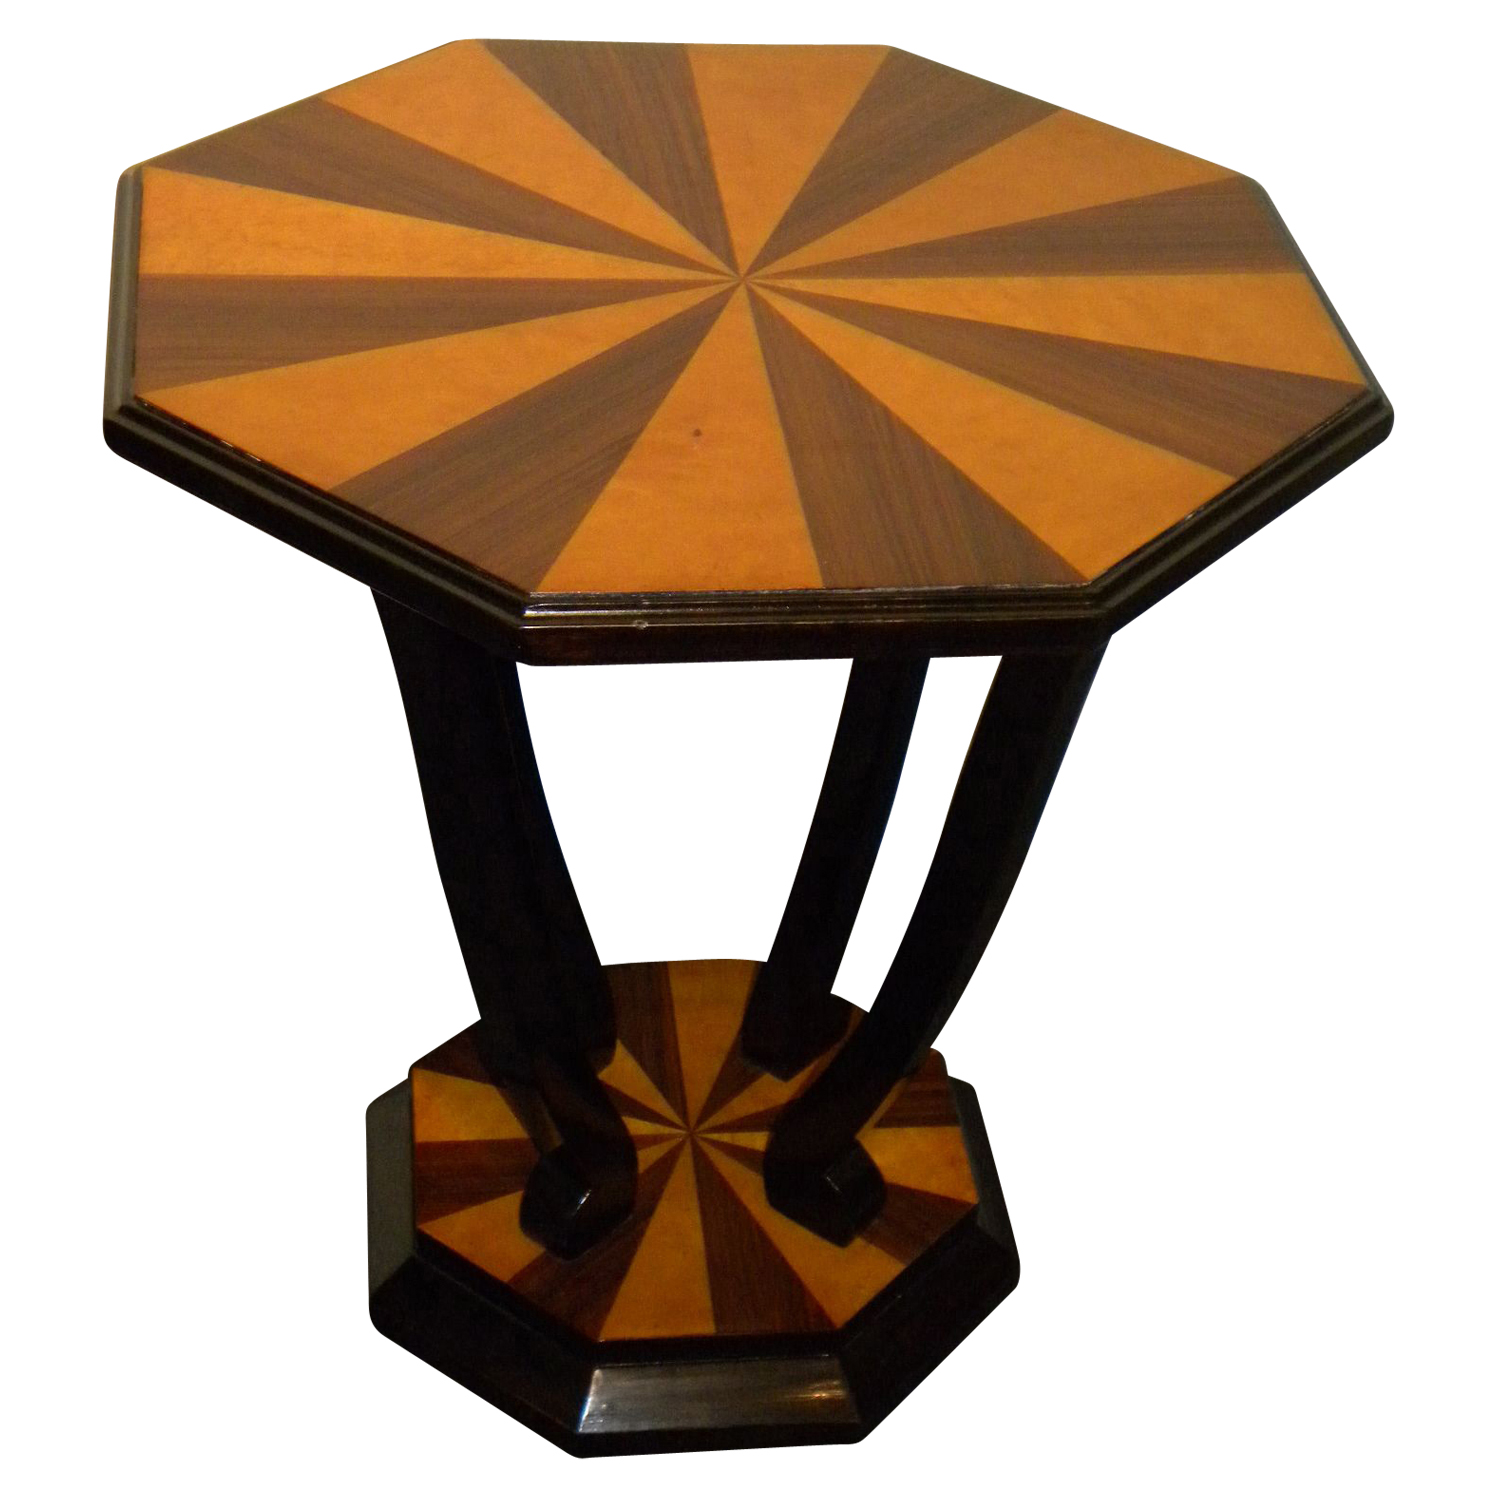 Art Deco Furniture for sale Small Tables